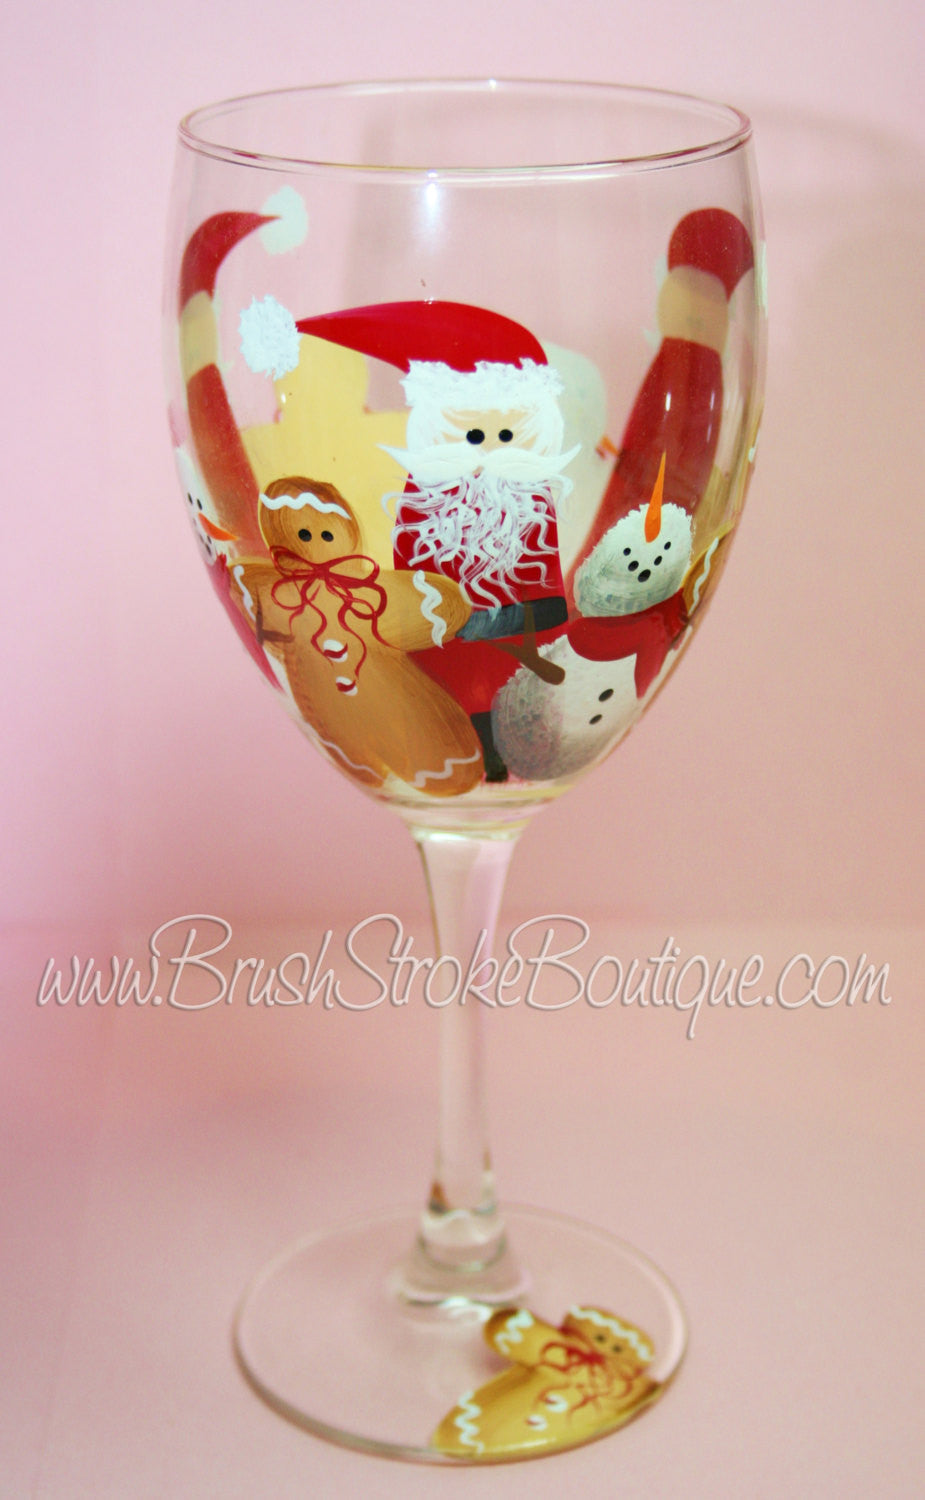 Hand Painted Wine Glass - Santas Crew - Original Designs by Cathy Kraemer